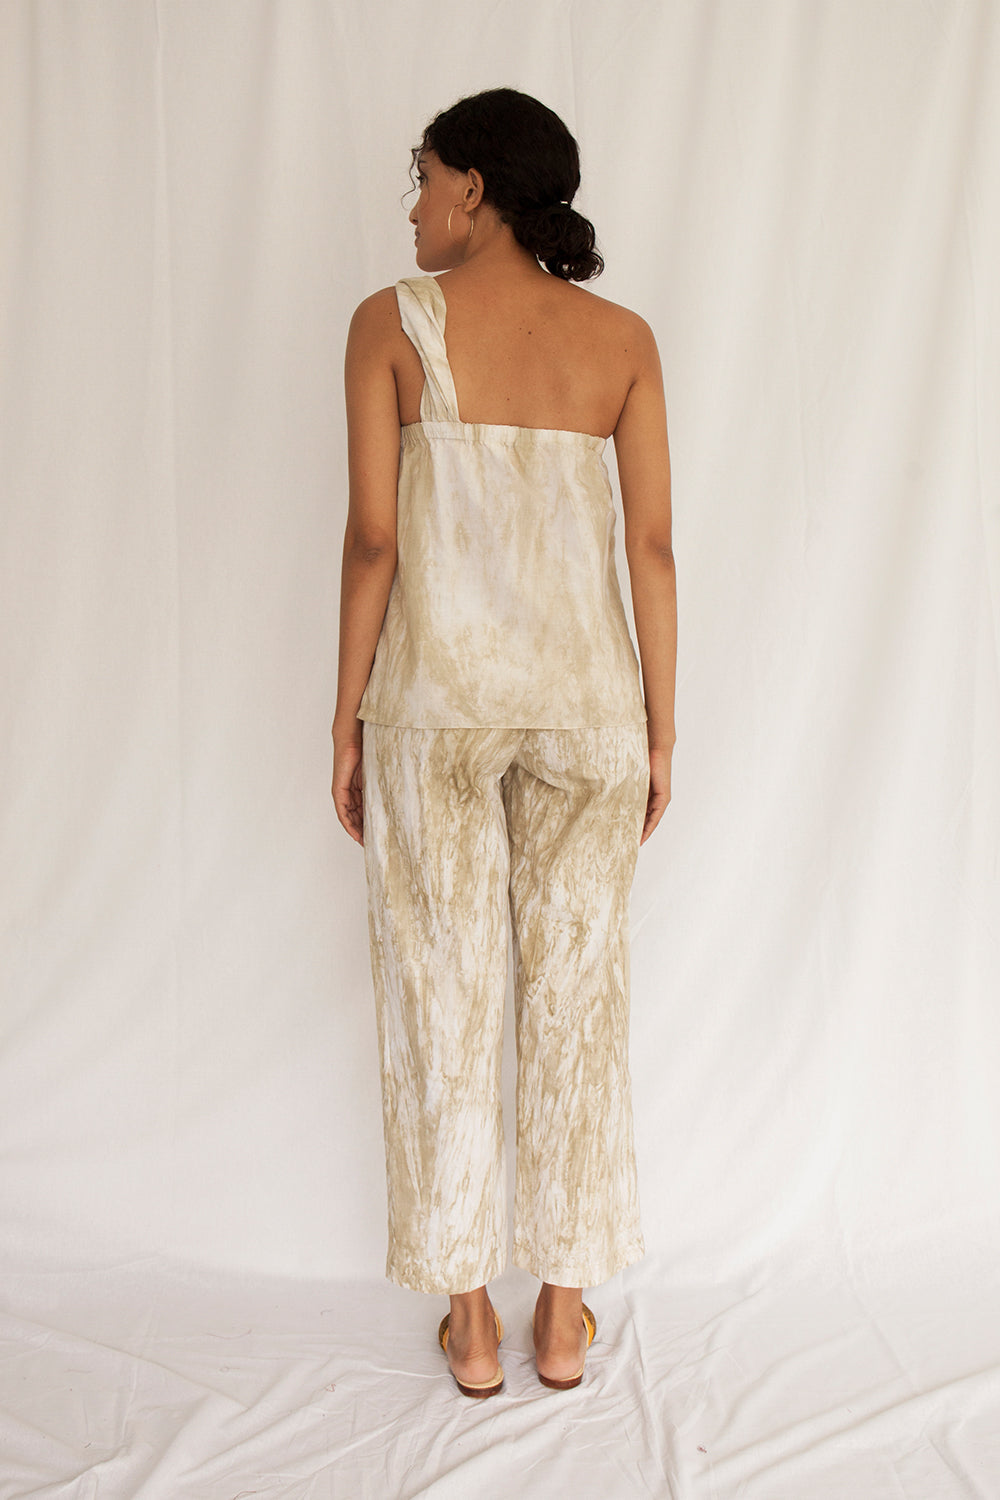 Maha Toga Top (Cotton) - FERN